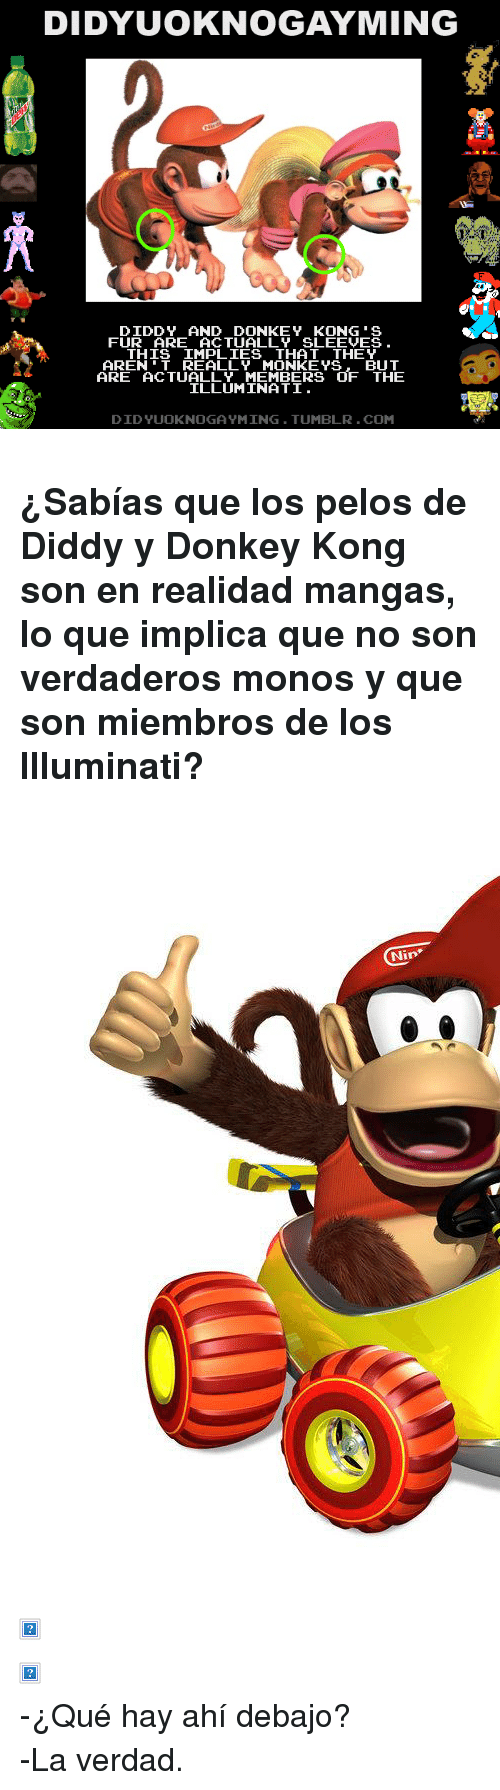 """And Donkey: DIDYUOKNOGAYMING  DIDDY AND DONKEY KONG'S  FUR ARE ACTUALLY SLEEVES  THIS IMPLIES THAT THEY  AREN'T REALLY MONKE YS. BUT  ARE ACTUALLY MEMBERS OF THE  ILLUMINATI  DIDYUOKNOGA YMING.TUMBLR.COM <h3>¿Sabías que los pelos de Diddy y Donkey Kong son en realidad mangas, lo que implica que no son verdaderos monos y que son miembros de los Illuminati?</h3> <p><img alt="""""""" src=""""http://images.wikia.com/donkeykong/images/archive/d/df/20110909224759!DKRDS_Diddy_Kong.jpg""""/></p>  <p><img alt="""""""" src=""""http://media.animevice.com/uploads/1/15812/448751-diddy_kong__mario_super_sluggers_.jpg""""/></p>  <p><img alt="""""""" src=""""http://www.thetanooki.com/wp-content/uploads/2010/11/donkey_kong.jpg""""/></p> <p>-¿Qué hay ahí debajo?</p> <p>-La verdad.</p>"""